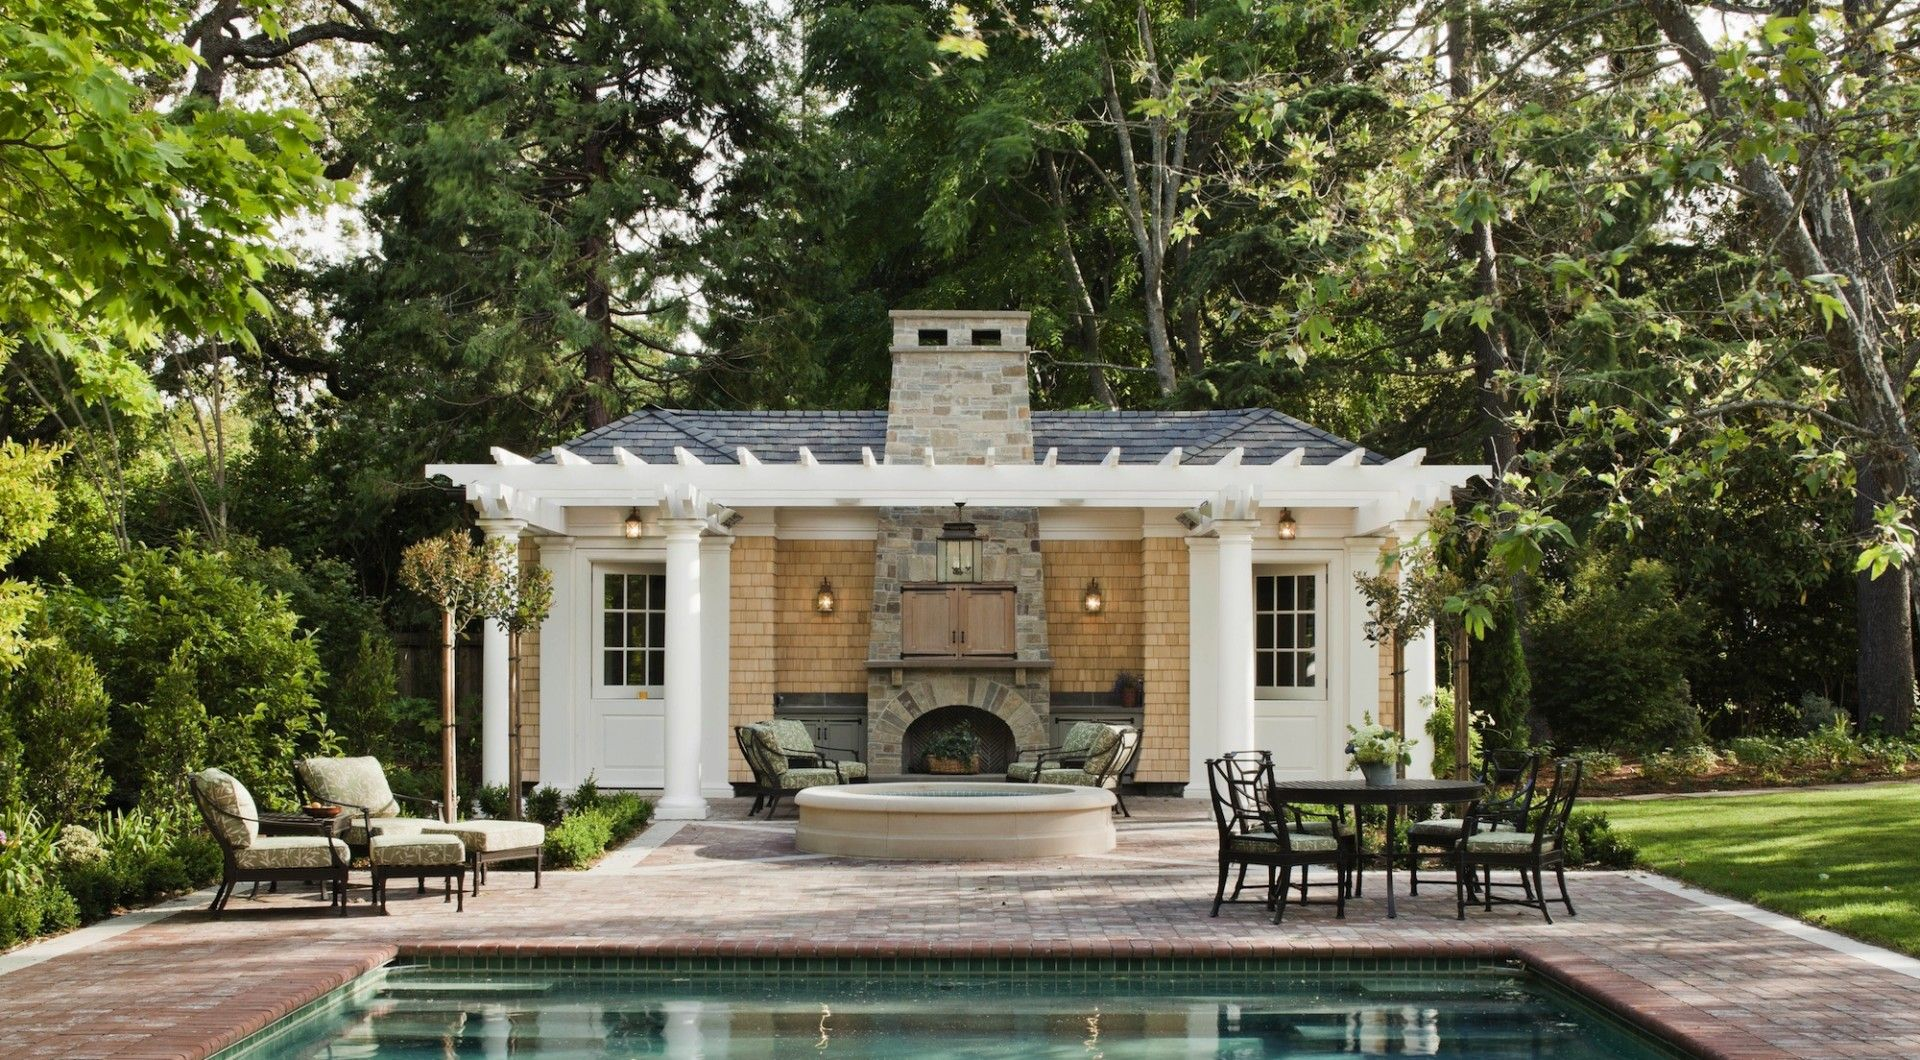 Pool House Designs Ideas fabulous modern style traditional accents pool house designs ideas Stunning Traditional Outdoor Fireplace Pool House Designs Ideas